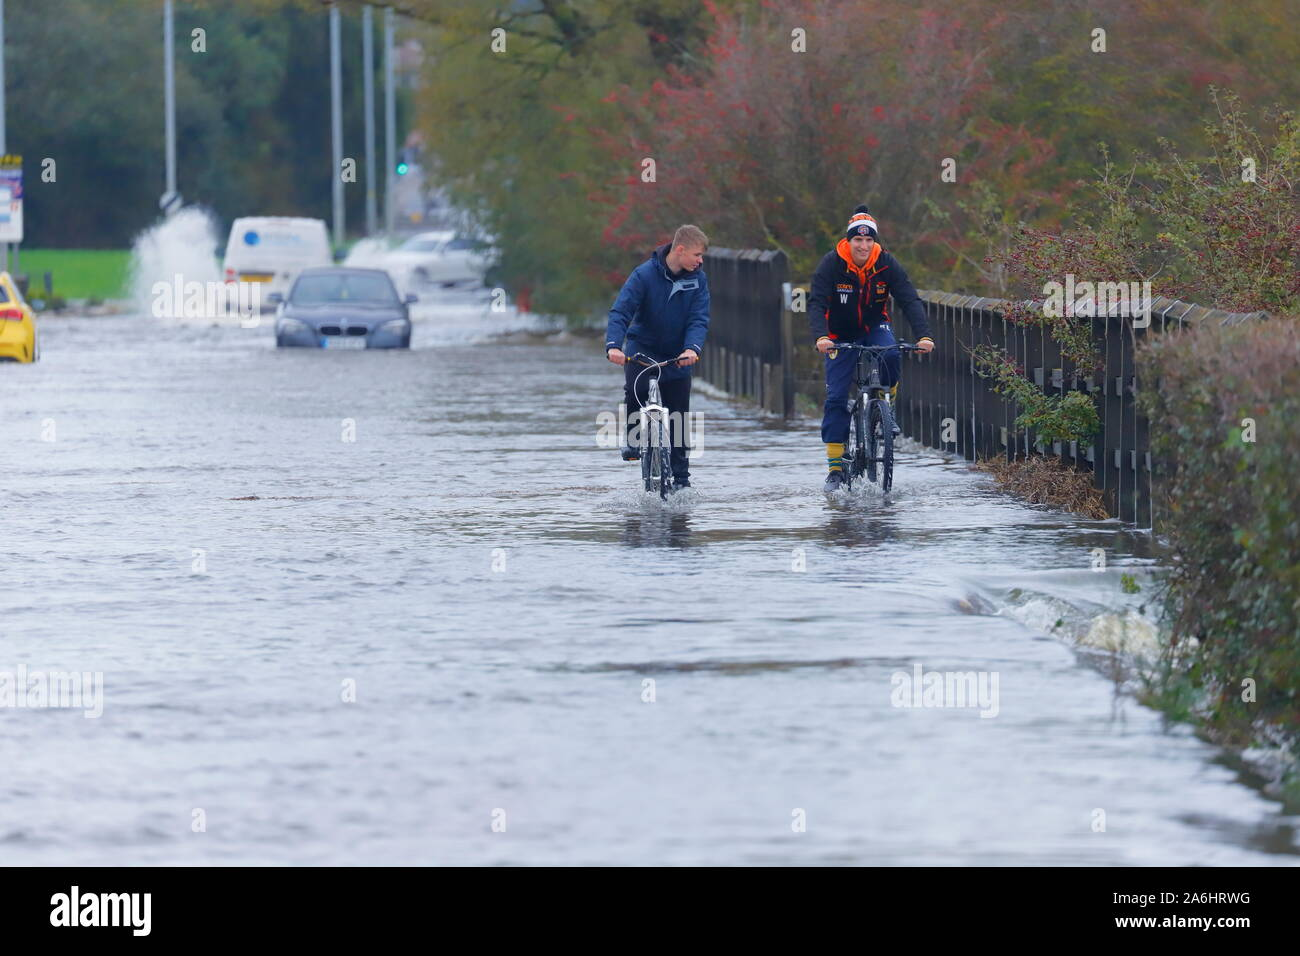 Cyclists battle through floodwater in Castleford after 24 hours of rainfall Stock Photo